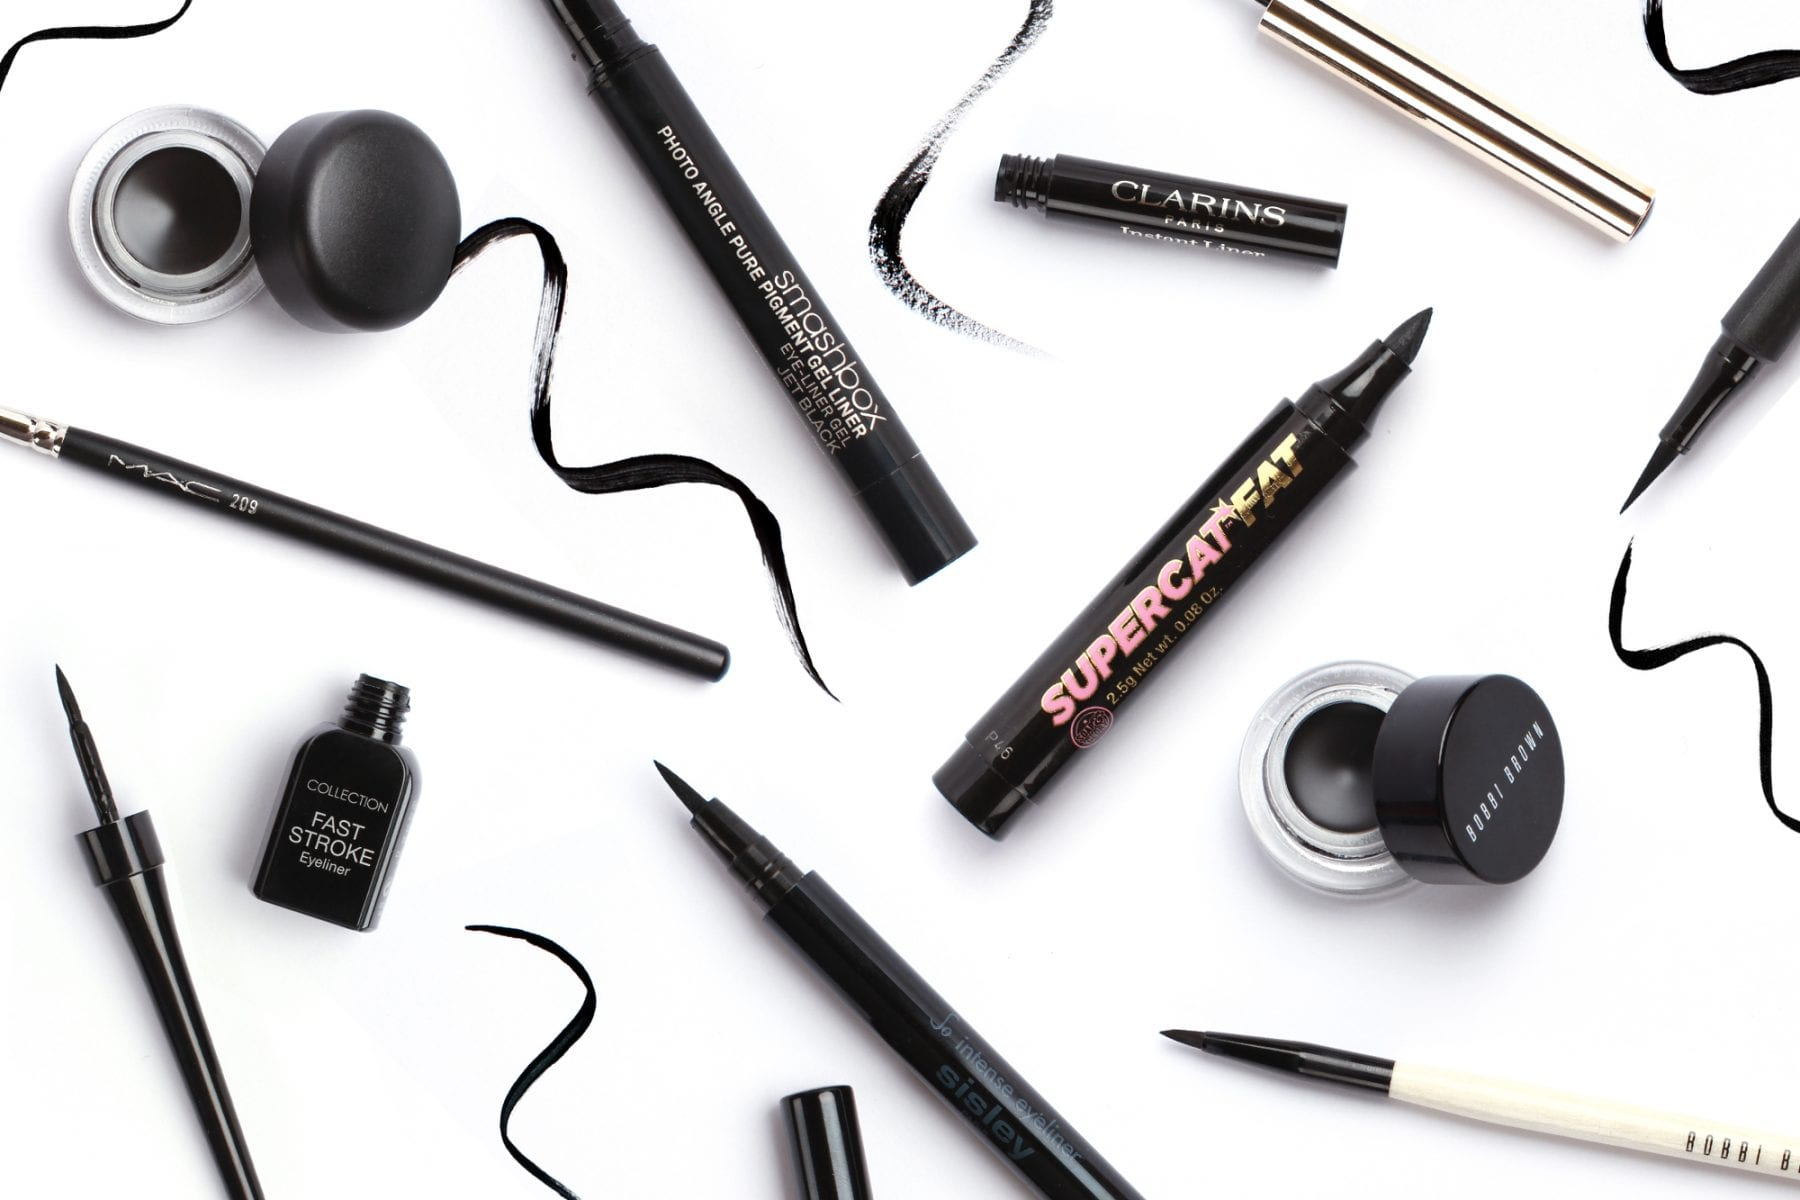 The Best Liquid Eyeliner For Every Look